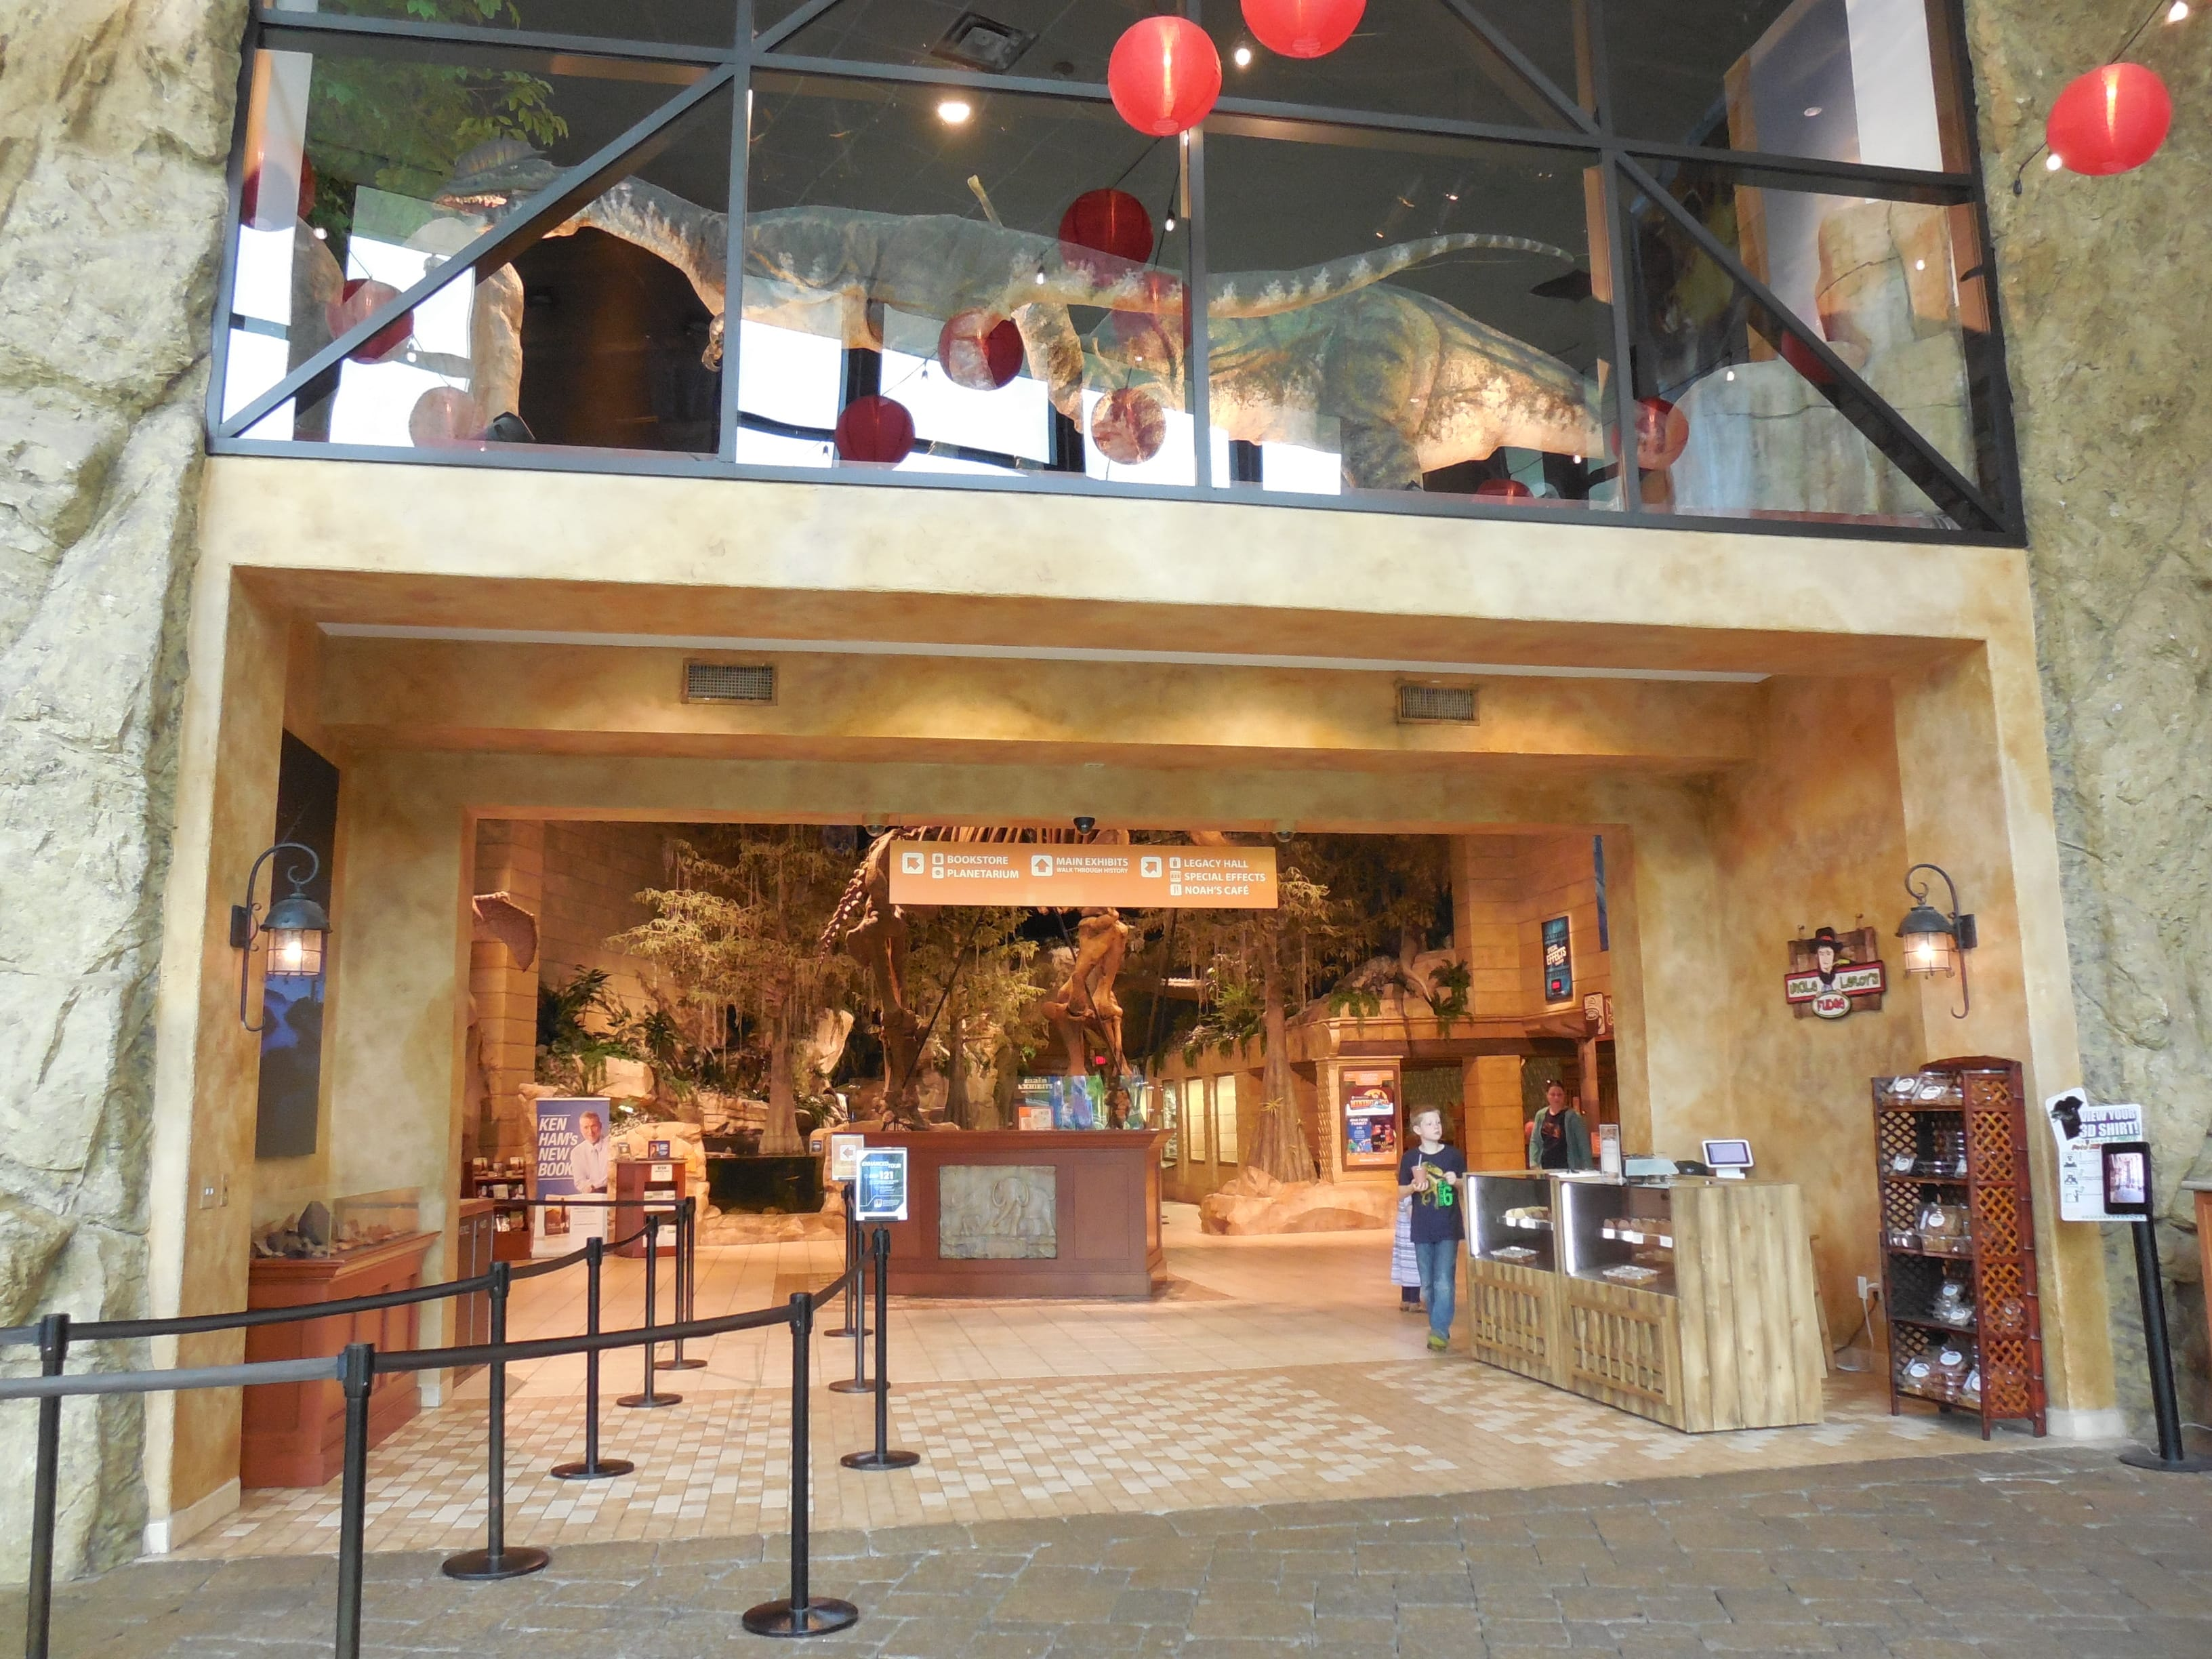 Fairhaven Baptist Church Creation Museum 2016 (83 of 206)